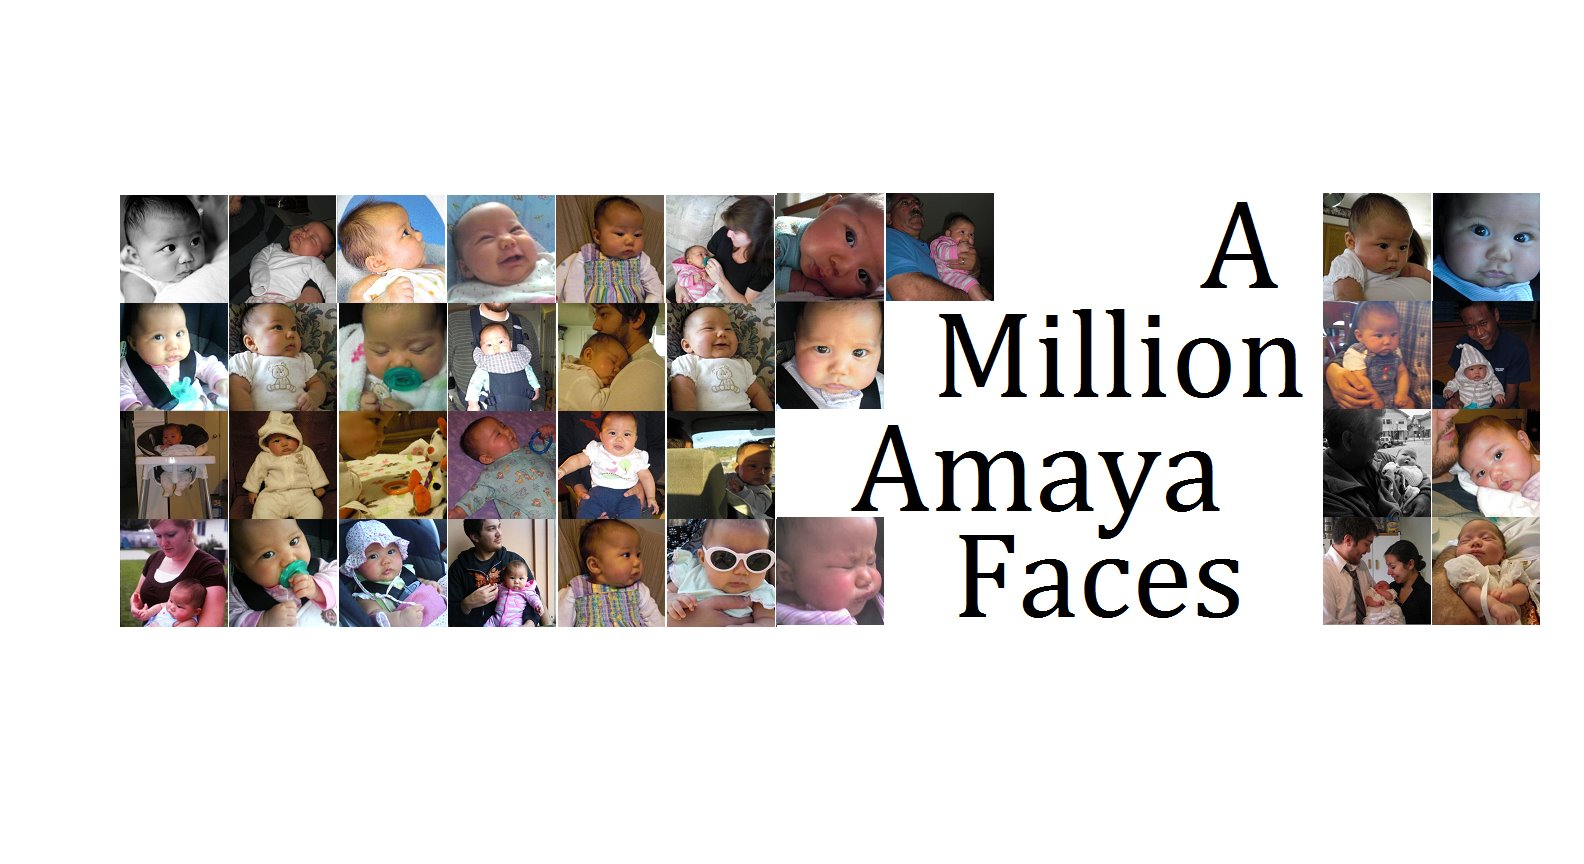 A Million Amaya Faces